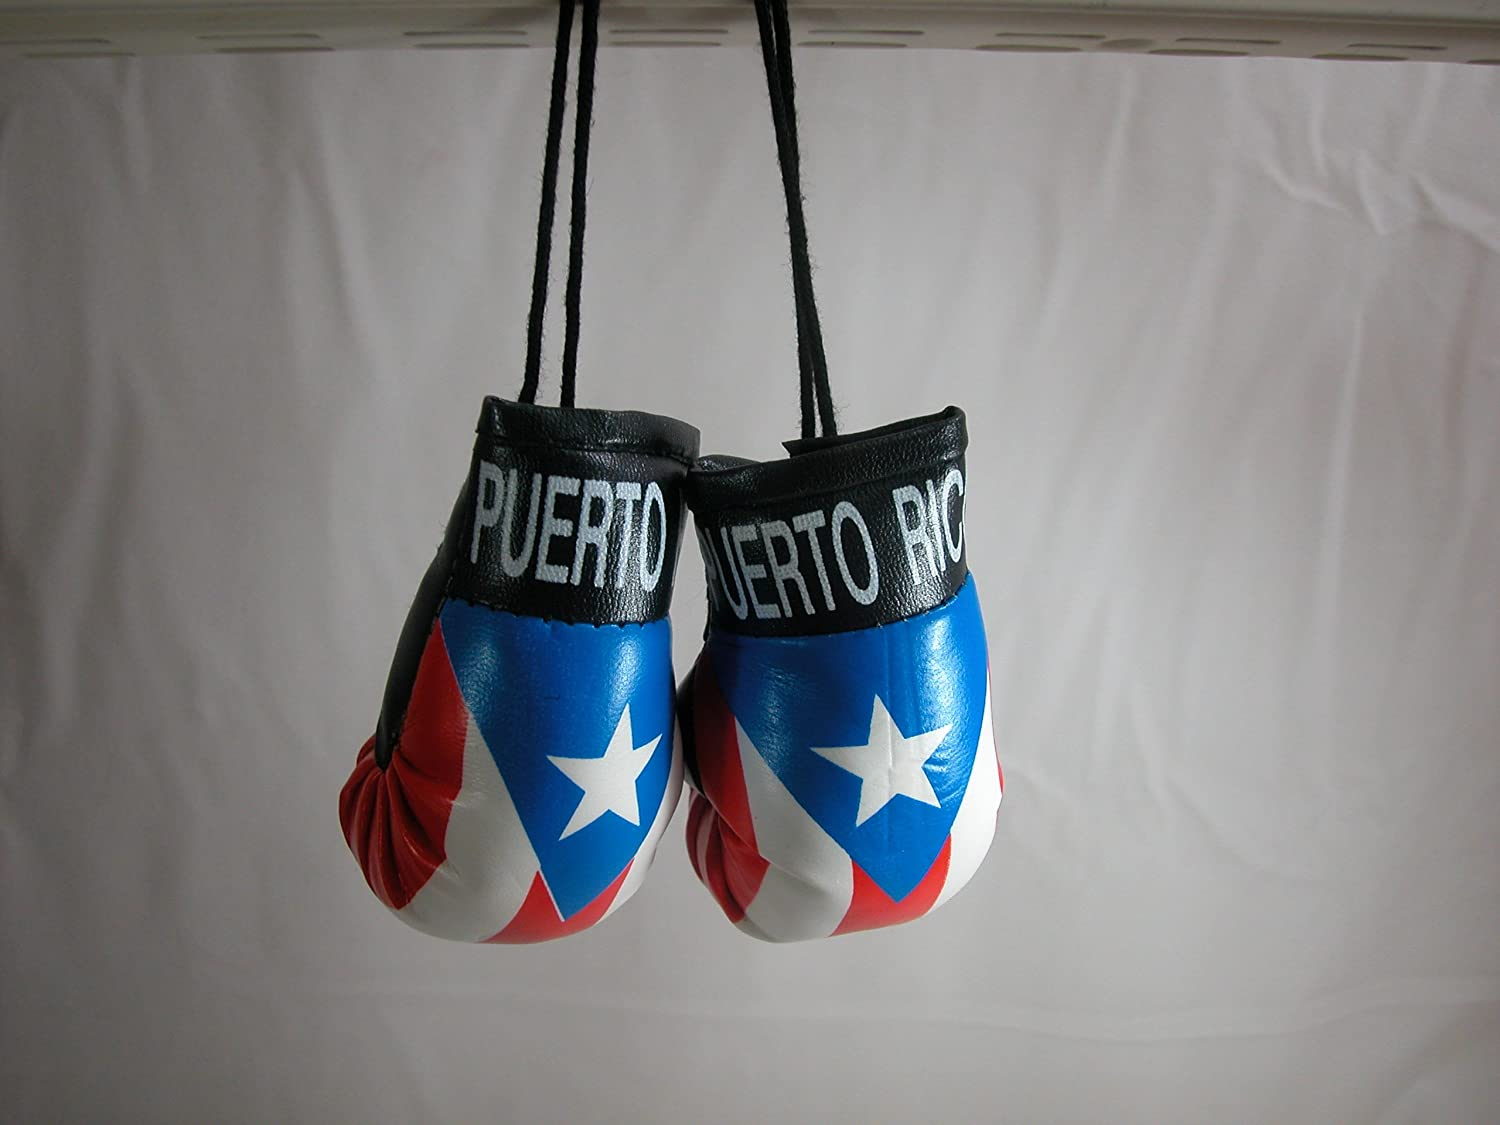 Puerto Rico Bandera Colour Mini boxing Gloves Car Hanging Ornament or gifts